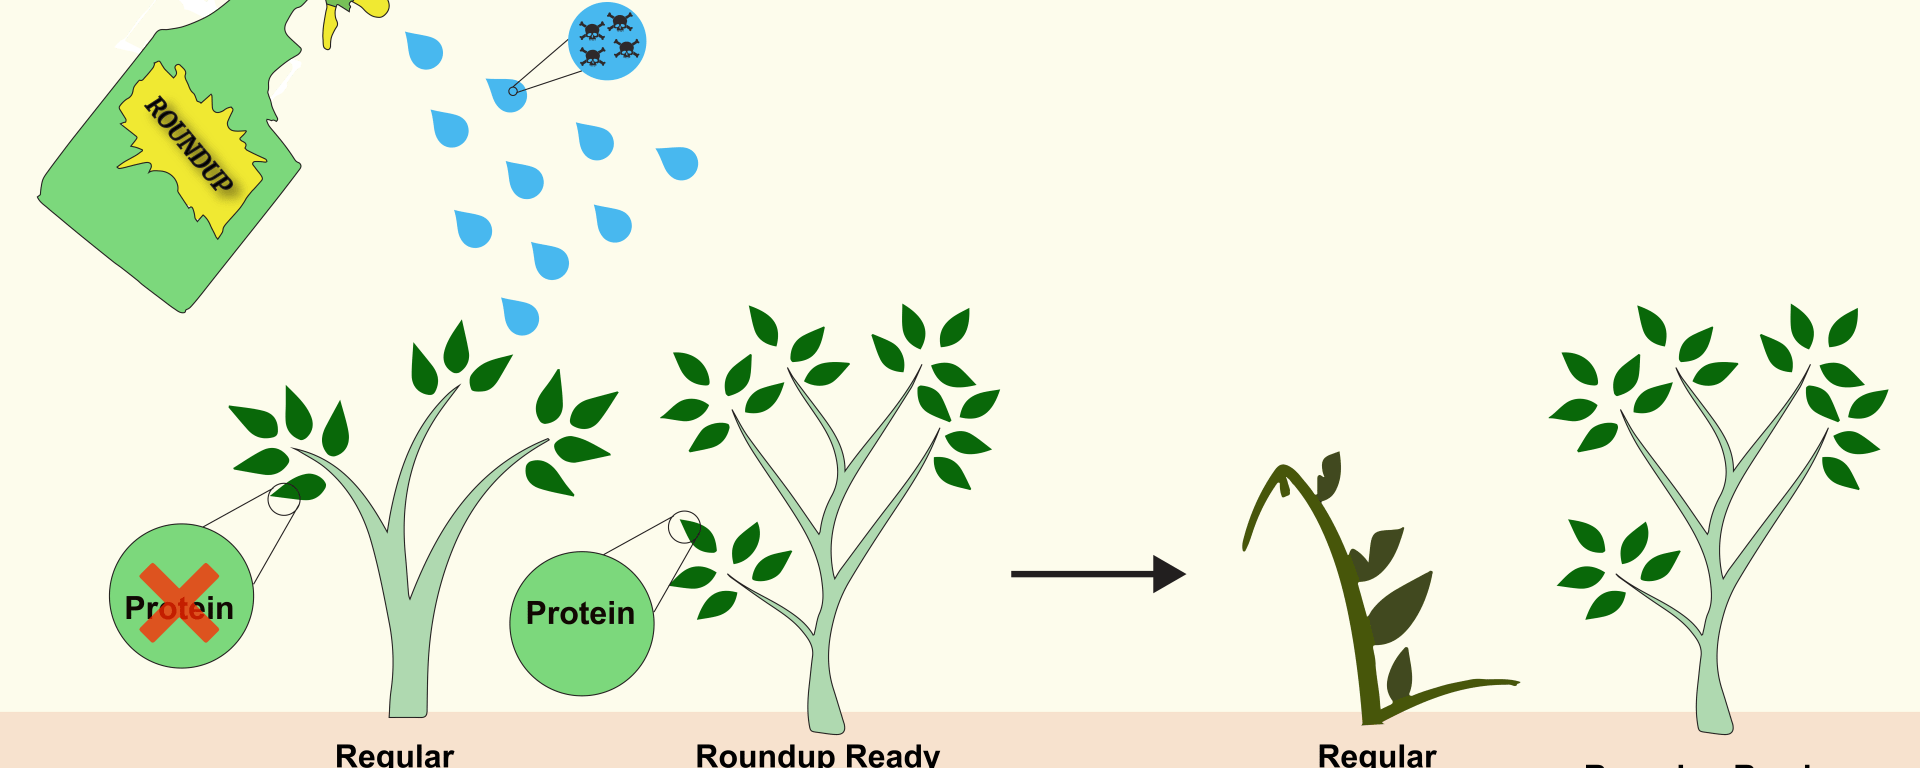 Why Roundup Ready Crops Have Lost their Allure - Science in